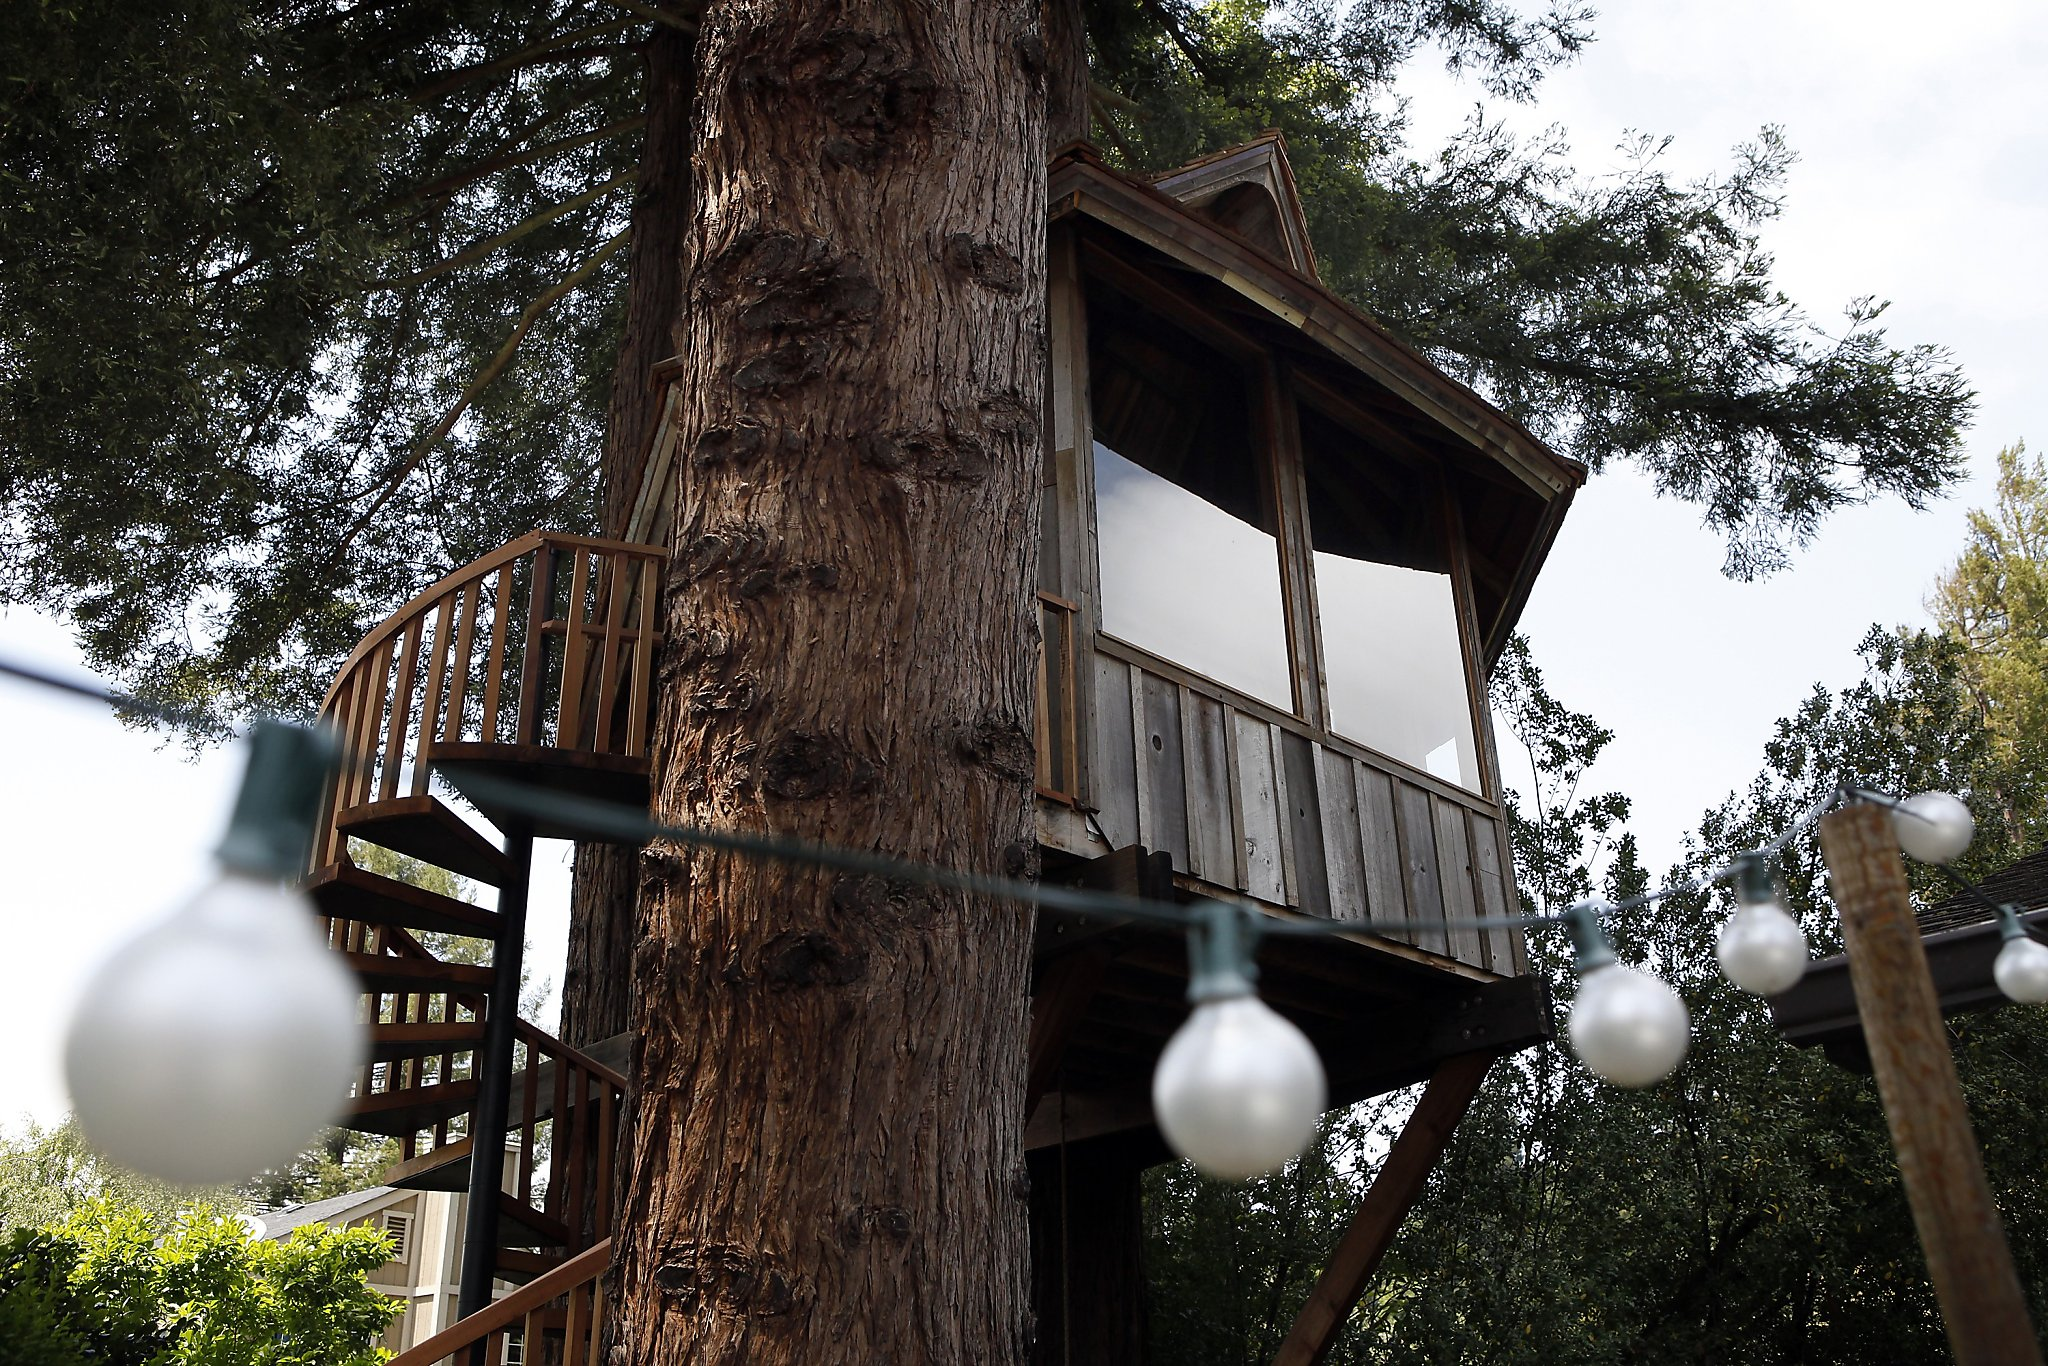 S.F.'s Jay Nelson builds tree houses as works of art - SFGate on tree house houses, easy tree house designs, tree house ladder designs, tree house platform, tree house fencing, tree house plans, tree house steps, tree house kits, tree house layouts, tree house handrails, tree house stairs systems, simple treehouse designs, tree house interior designs, tree house construction details, tree houses for adults, inside treehouse designs, new staircase designs, treehouse plans and designs, tree house architecture, tree staircase,